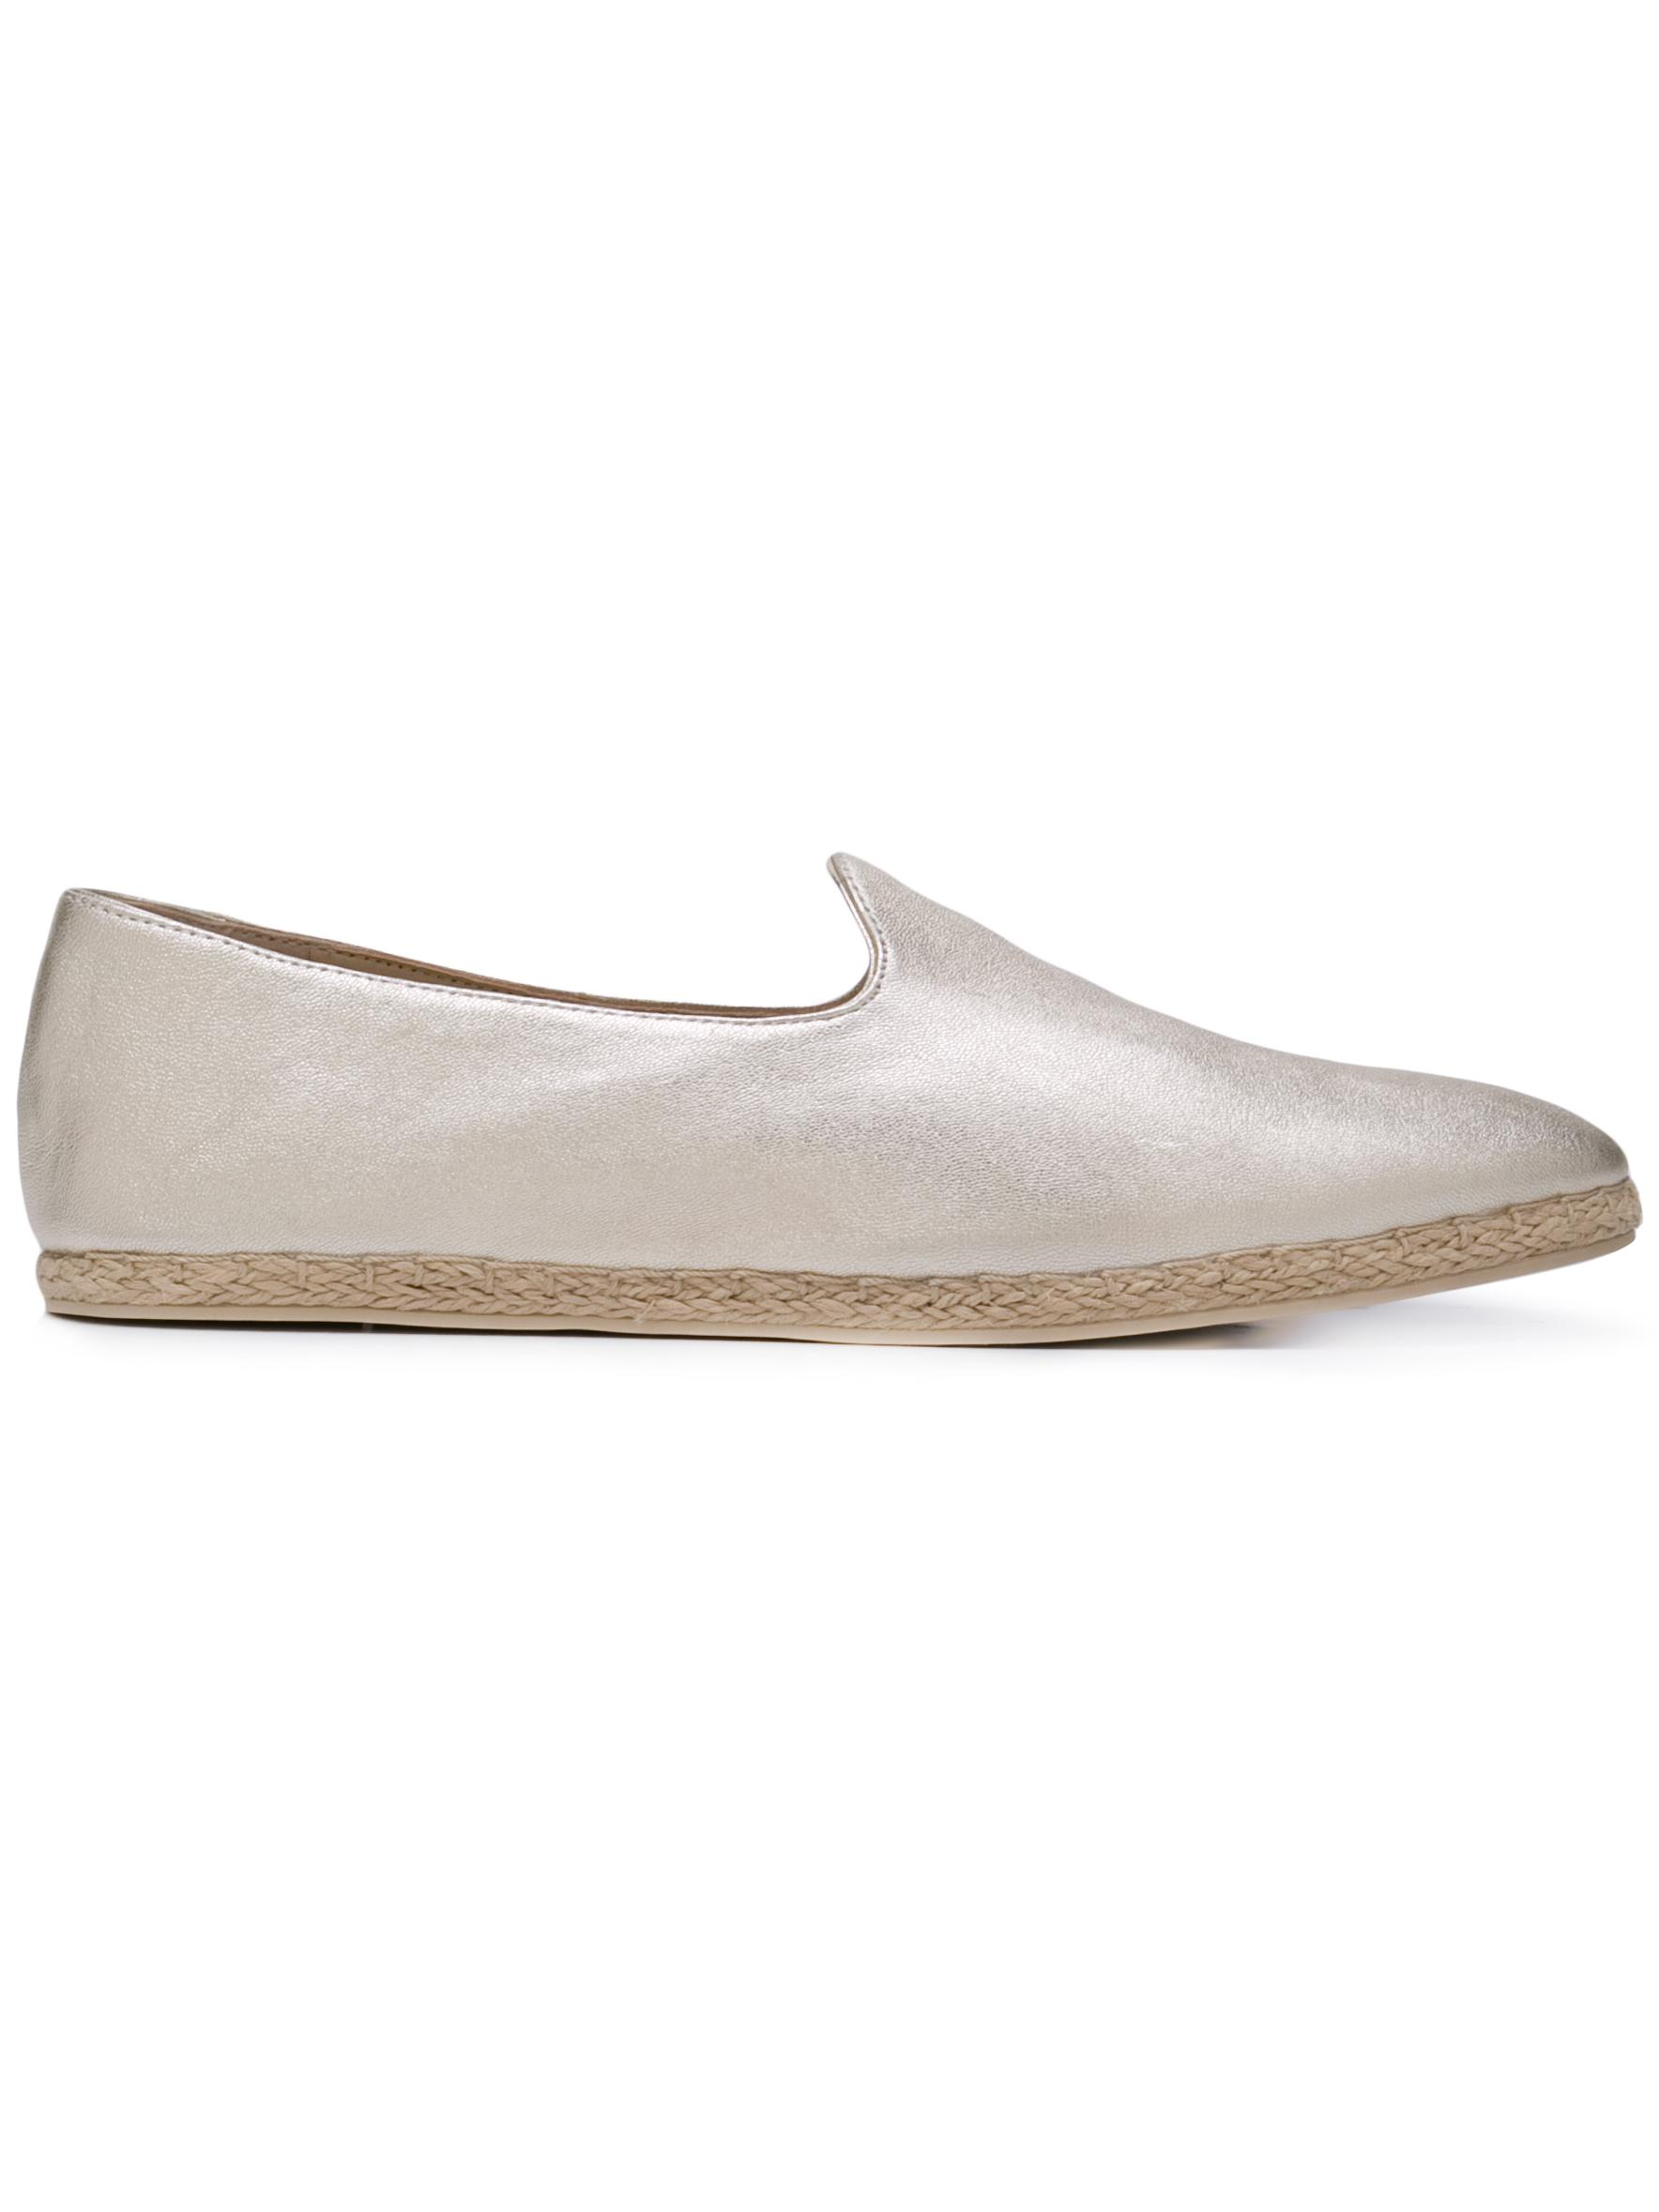 Metallic Leather Espadrille Loafer